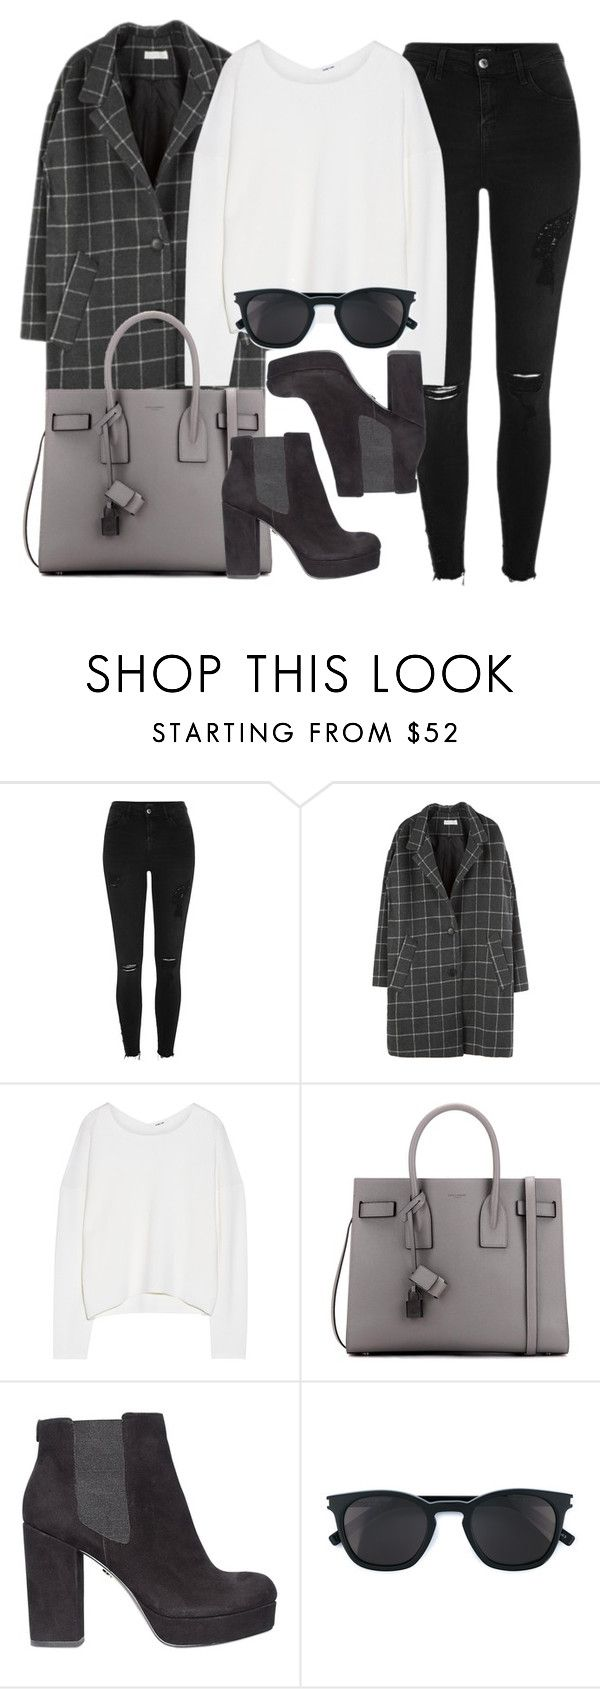 """Style #11547"" by vany-alvarado ❤ liked on Polyvore featuring River Island, Helmut Lang, Yves Saint Laurent and KG Kurt Geiger"